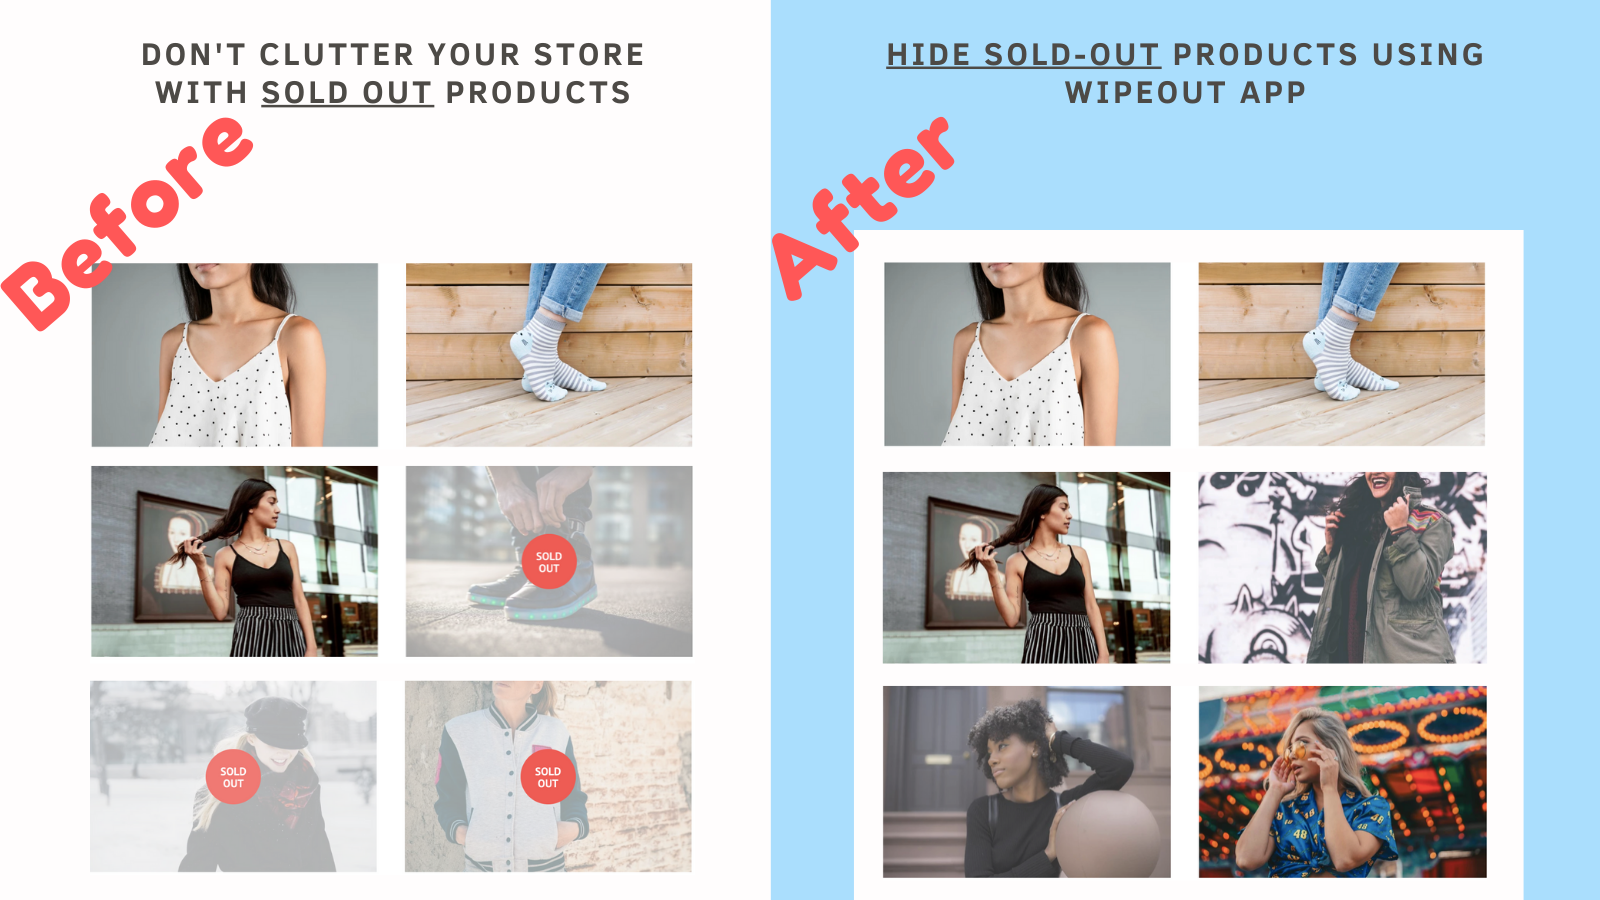 Hide sold out products using wipeout shopify app